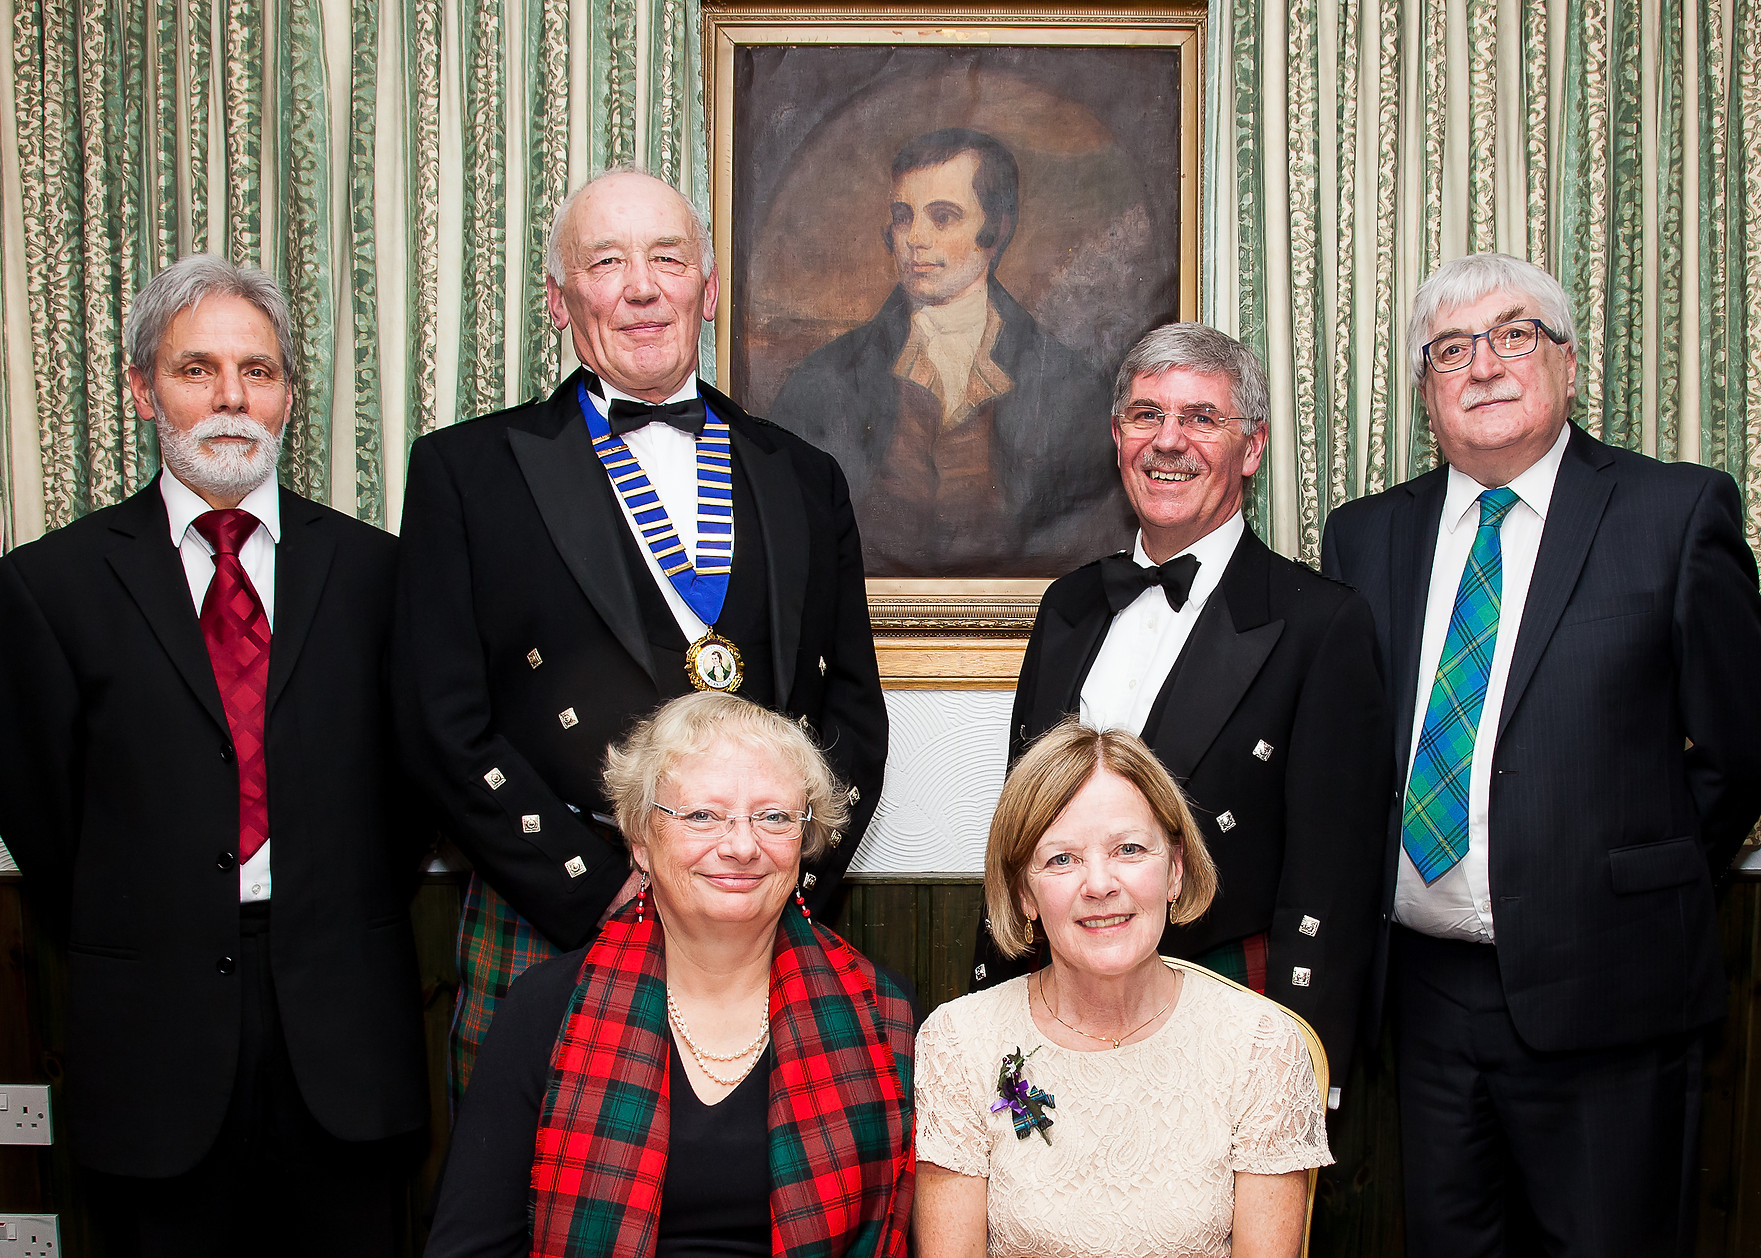 170125-Burns_Supper-6928-2.jpg